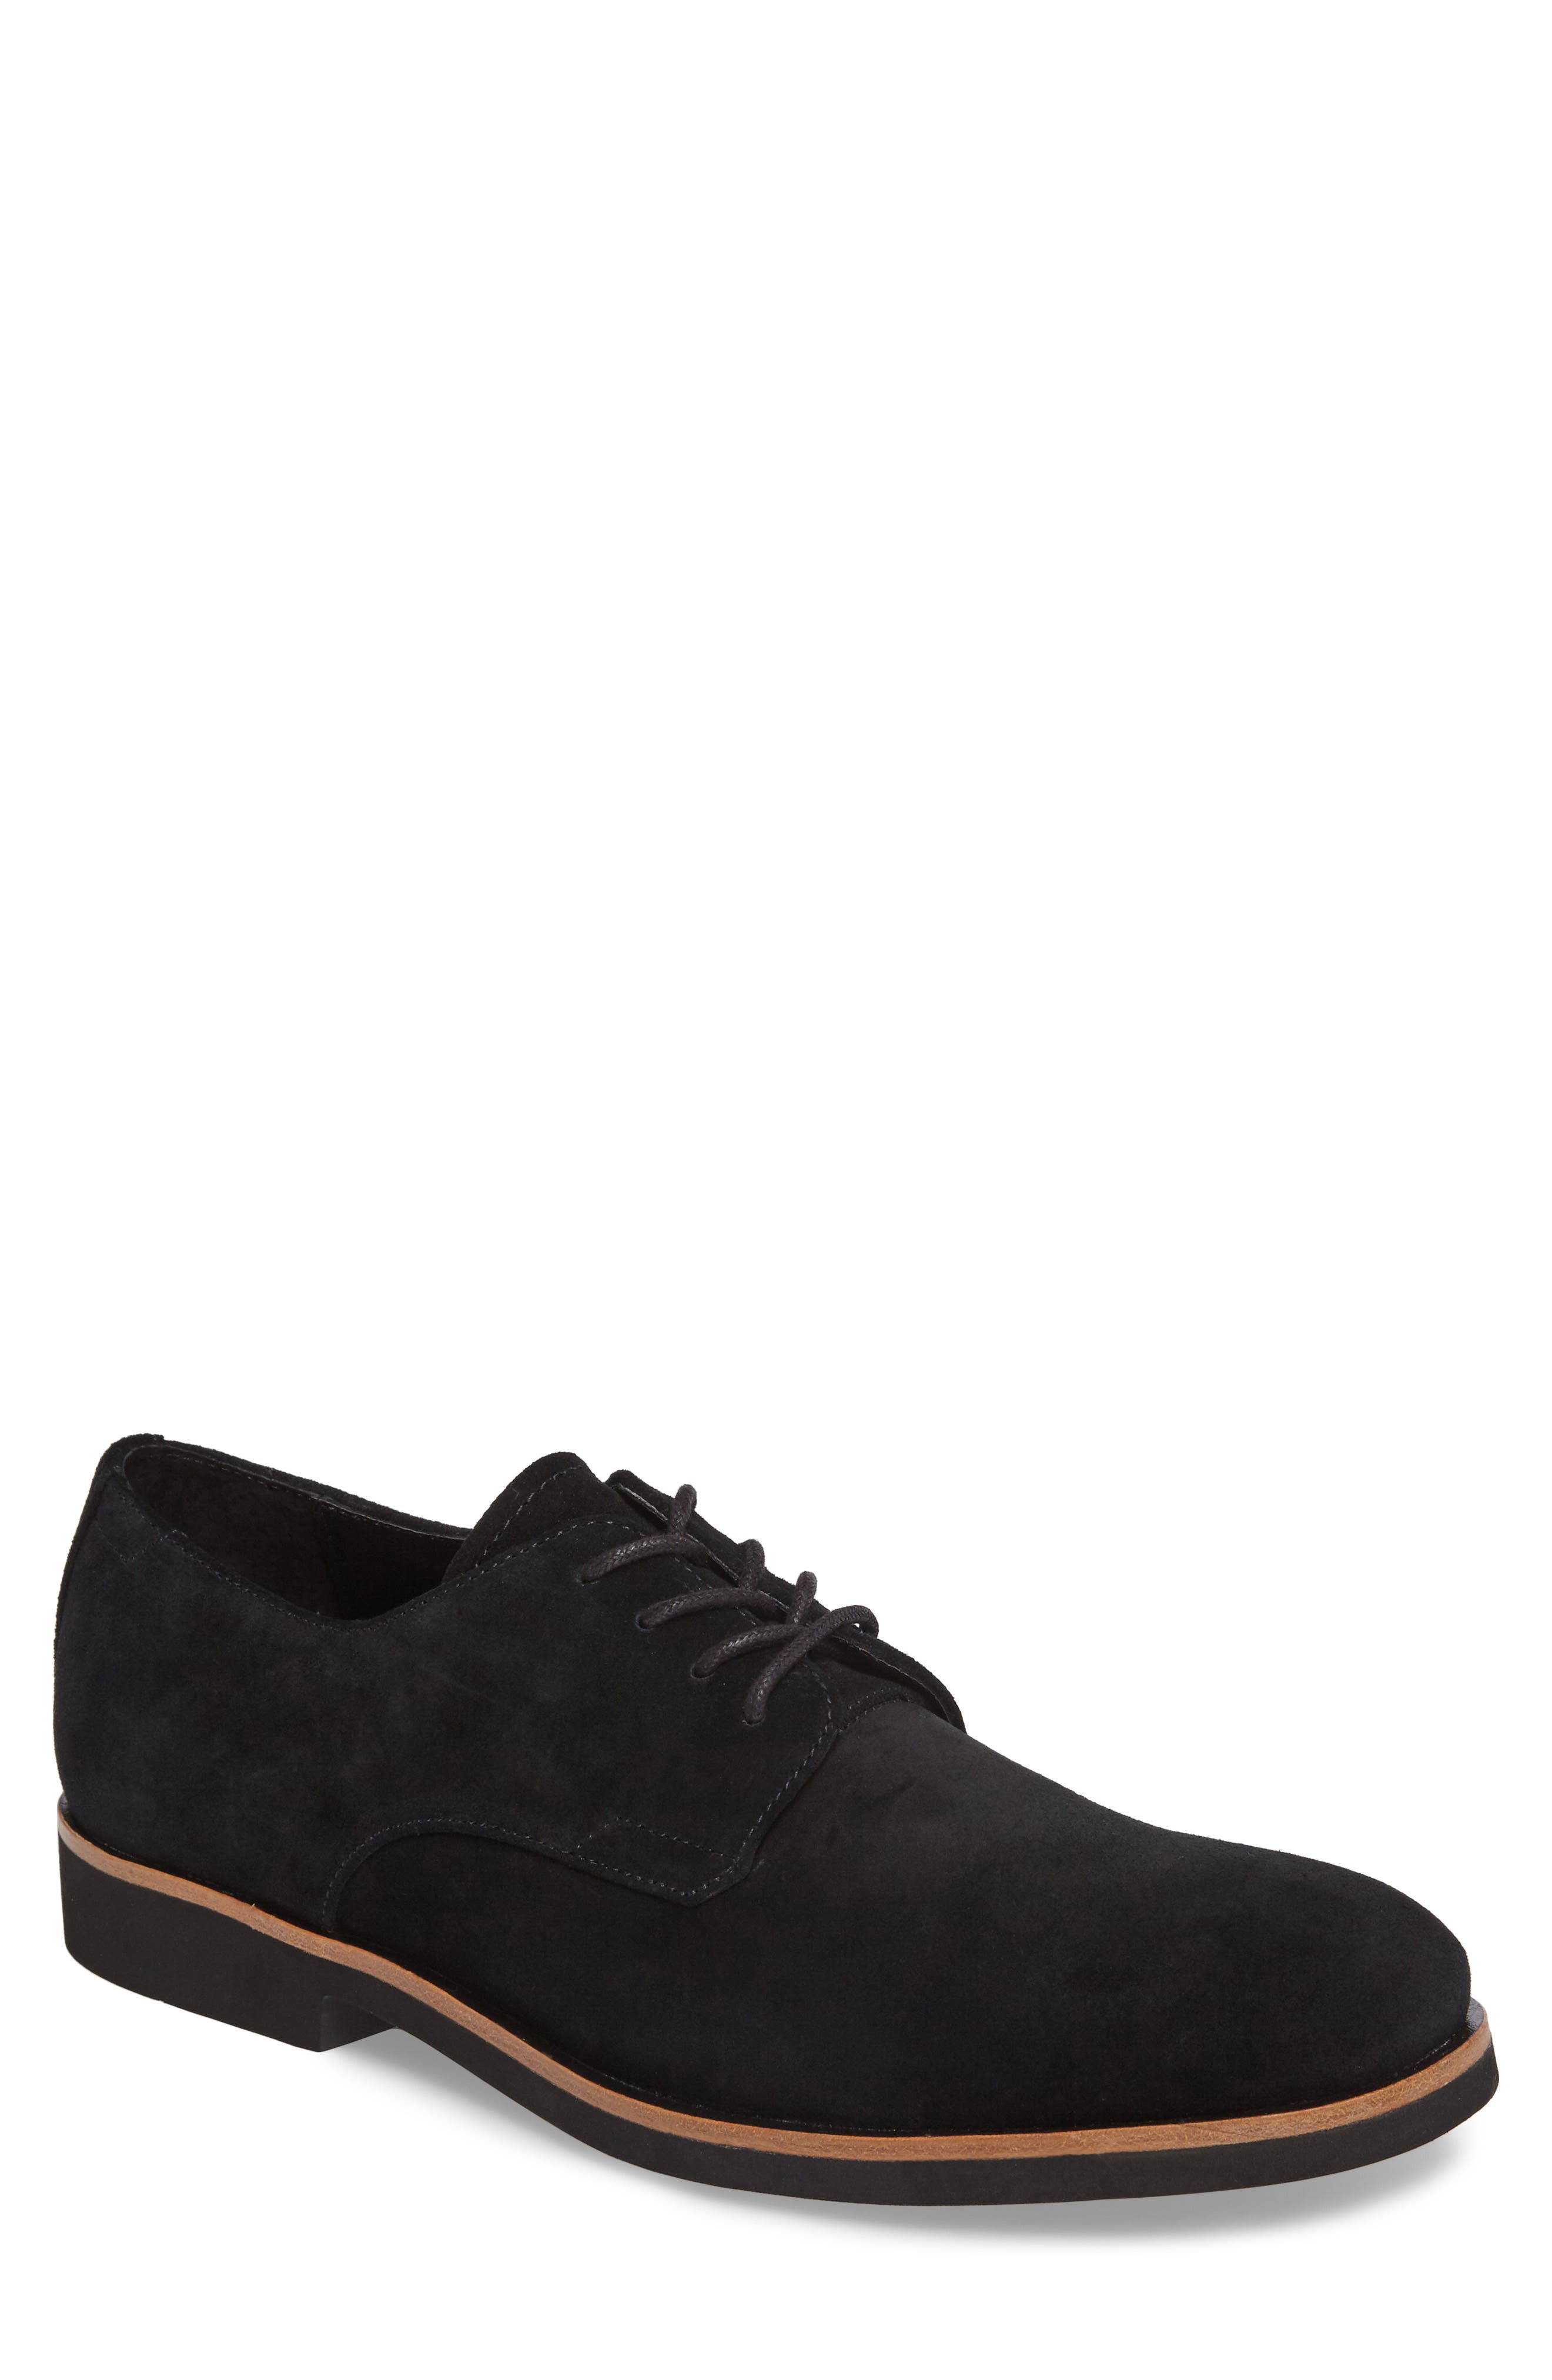 Faustino Plain Toe Derby,                             Main thumbnail 1, color,                             Black Suede